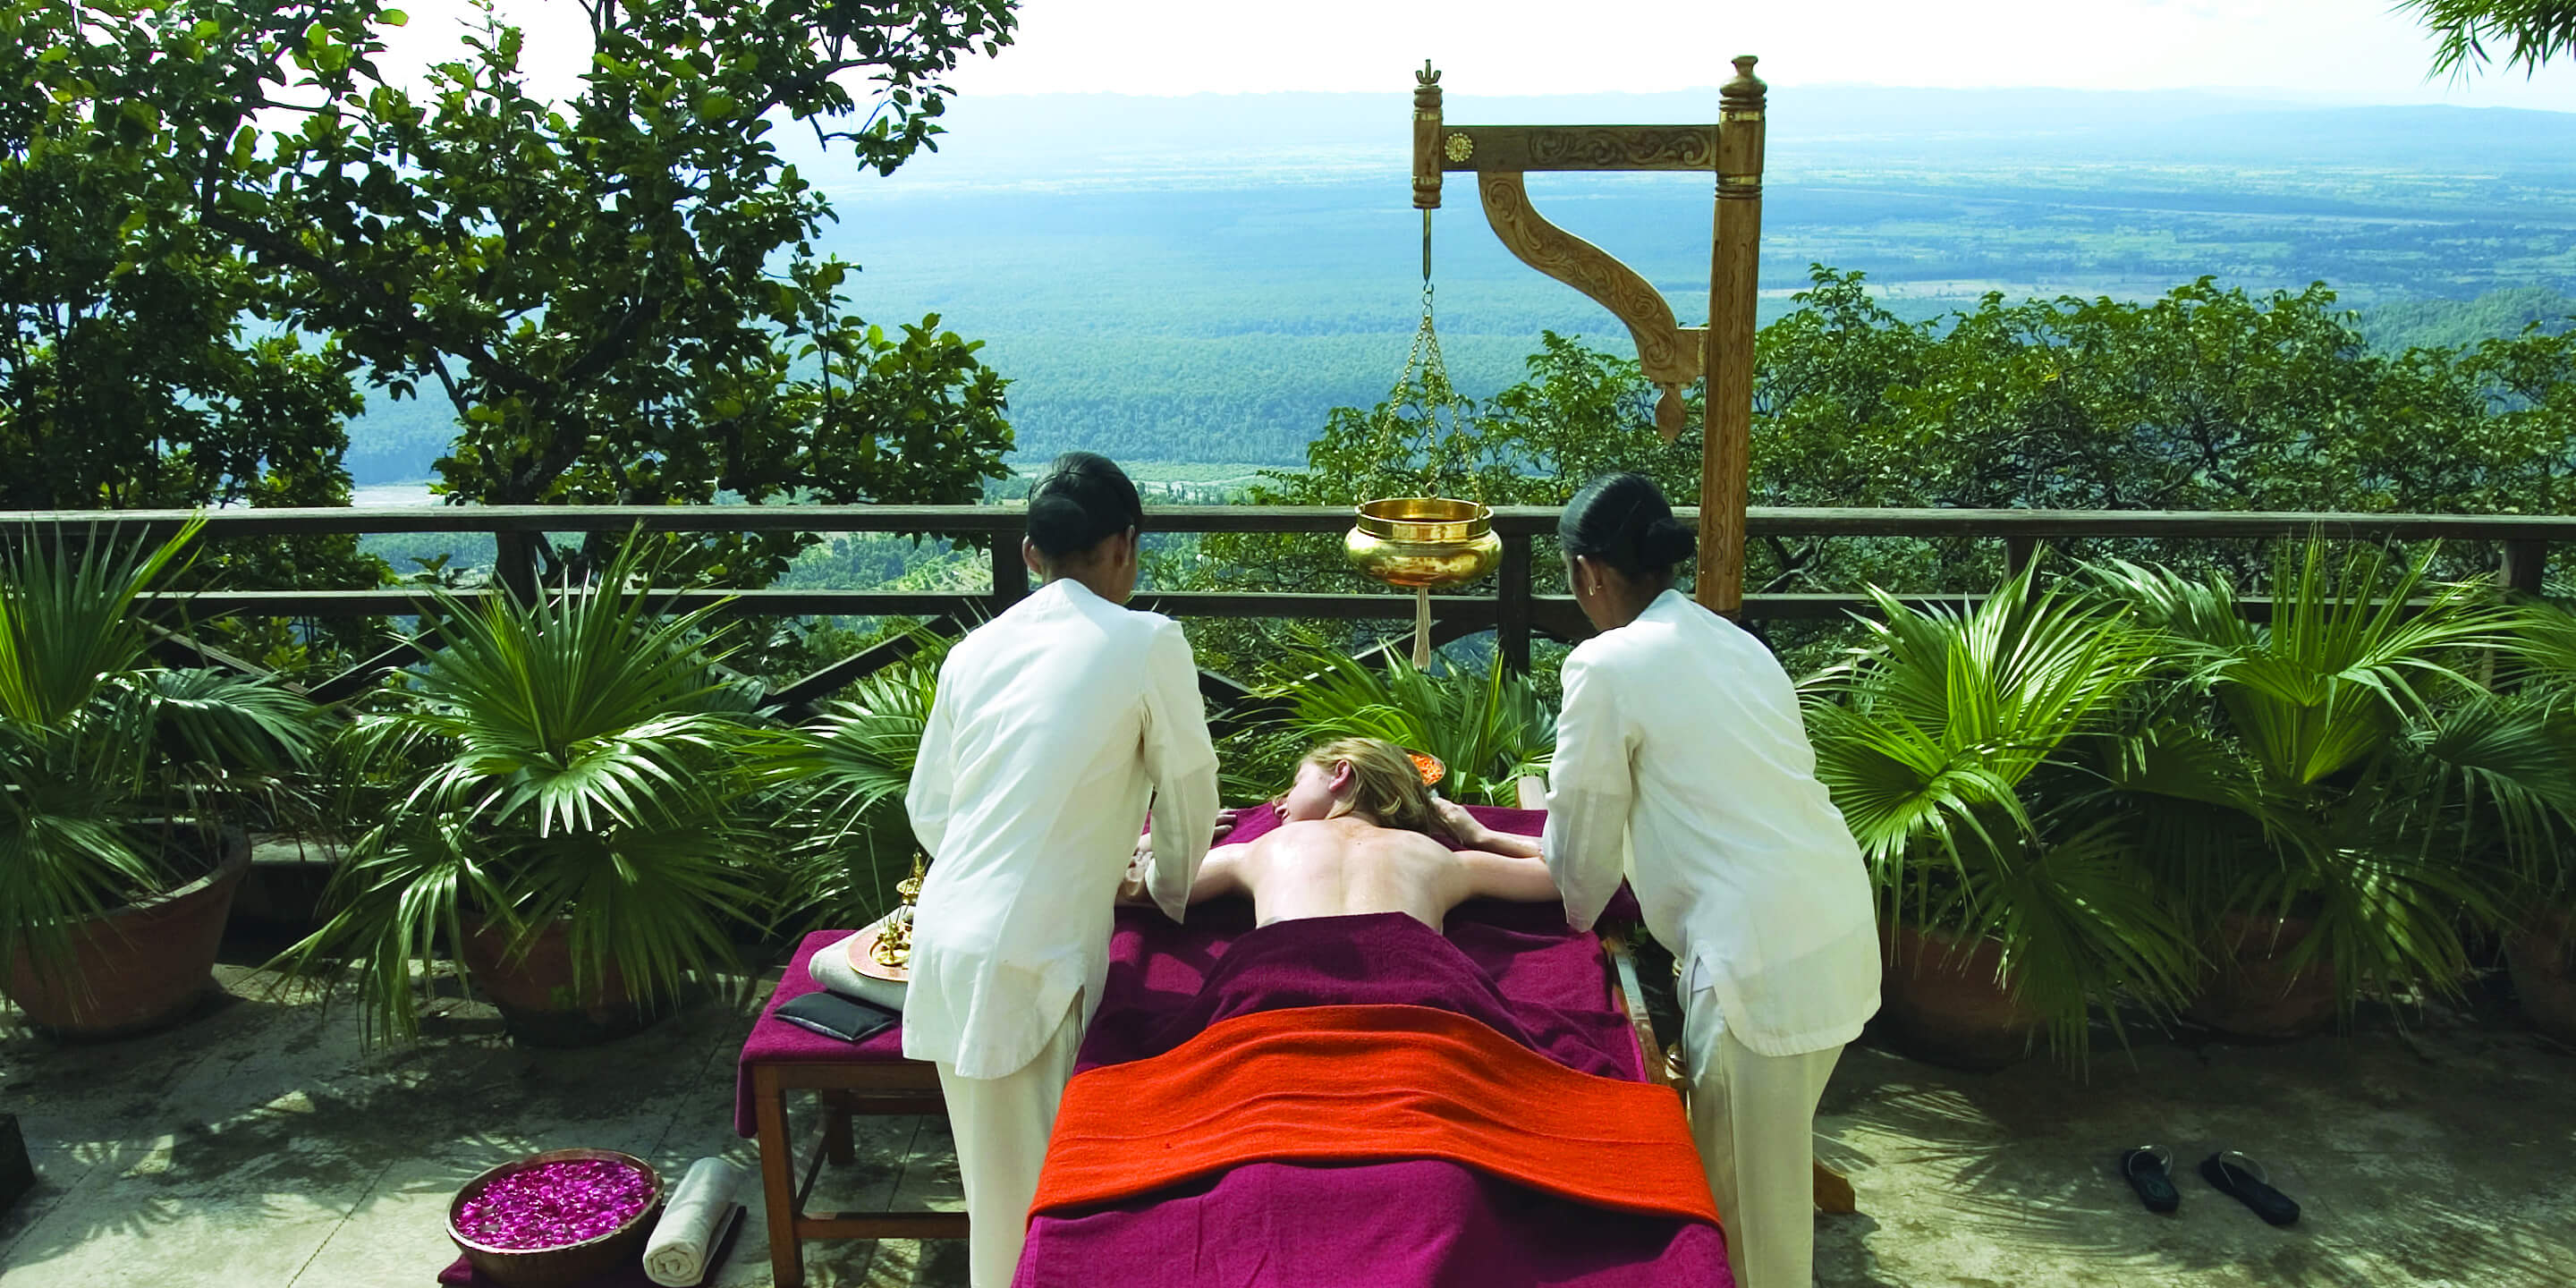 ananda in himalayas uttarakhand tehri garhwal best spa and ayurveda resorts in india